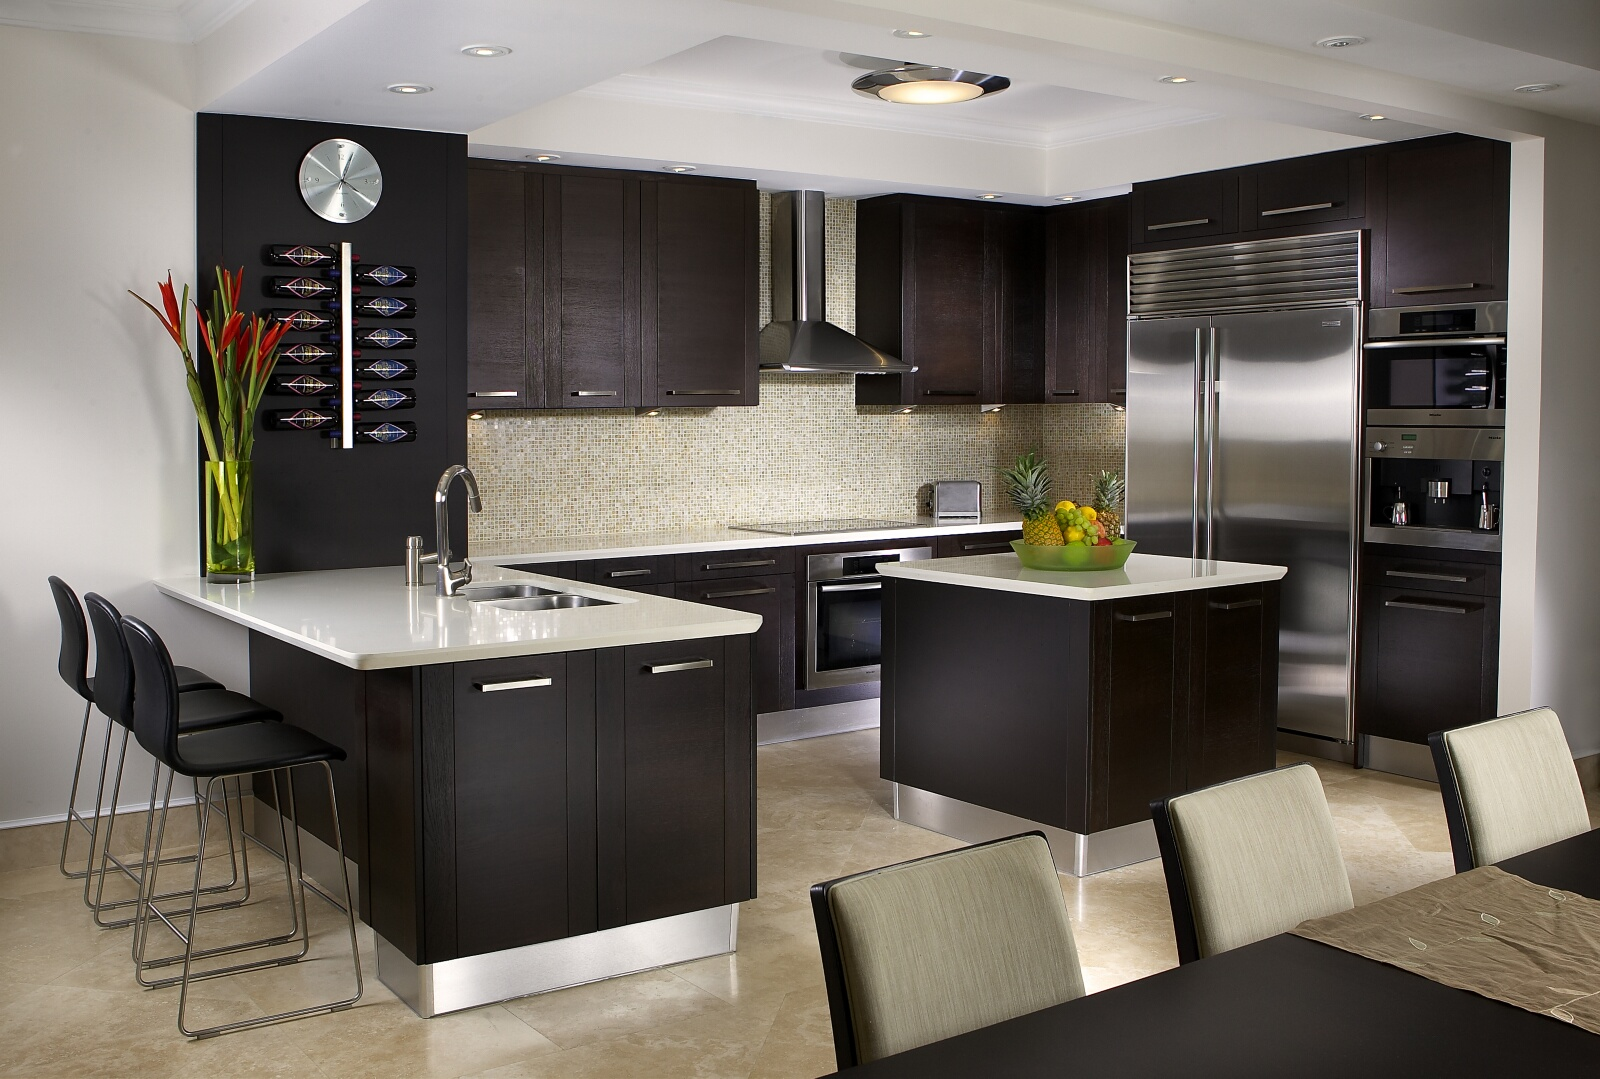 kitchen interior design photos kitchen interior design services miami florida 814